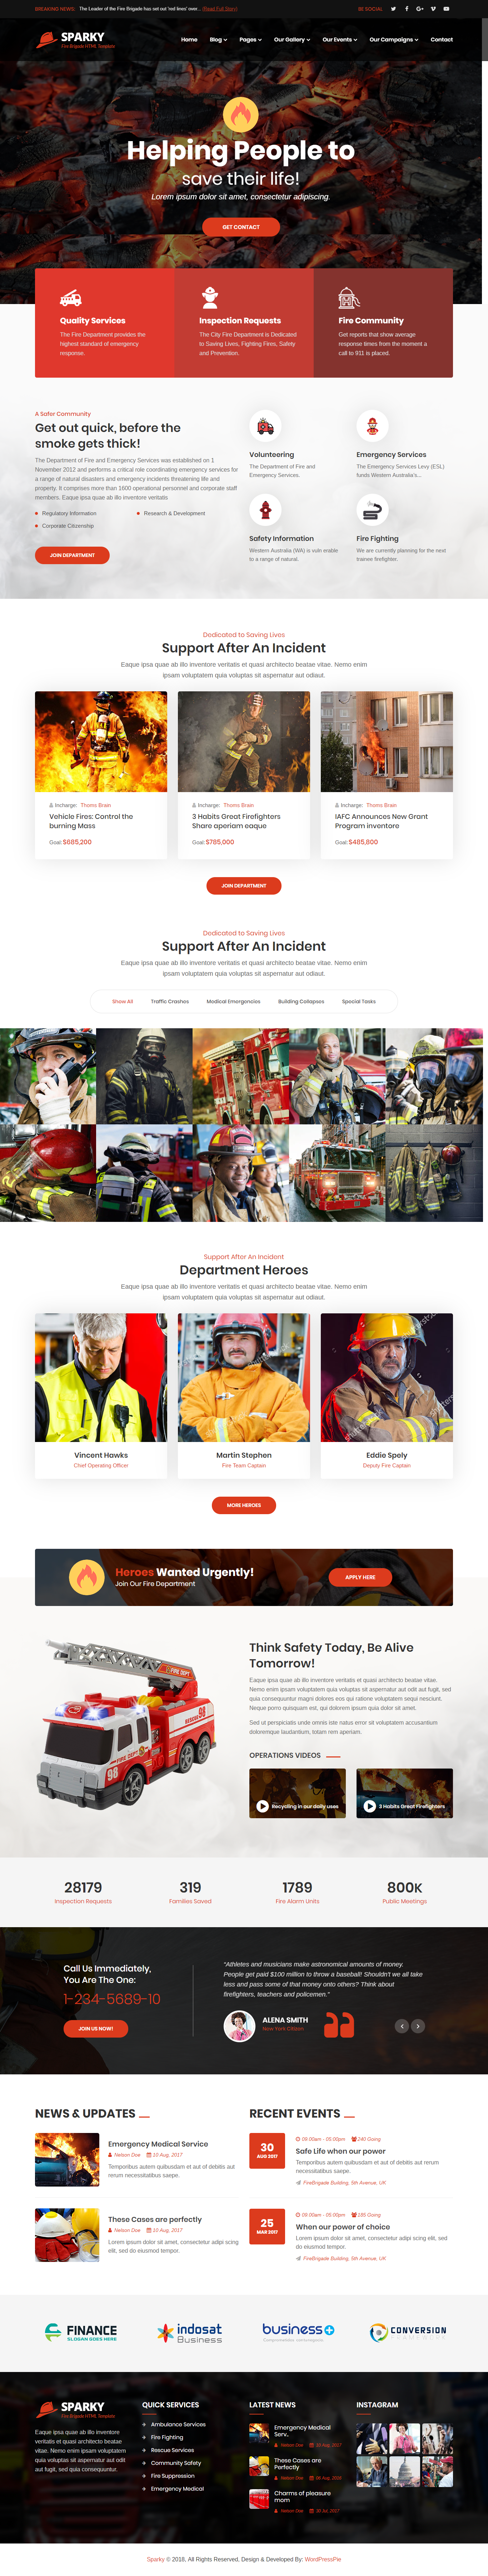 Sparky Fire Brigade HTML Template Is A For The Fighting And Rescue Services Will Help You Provide